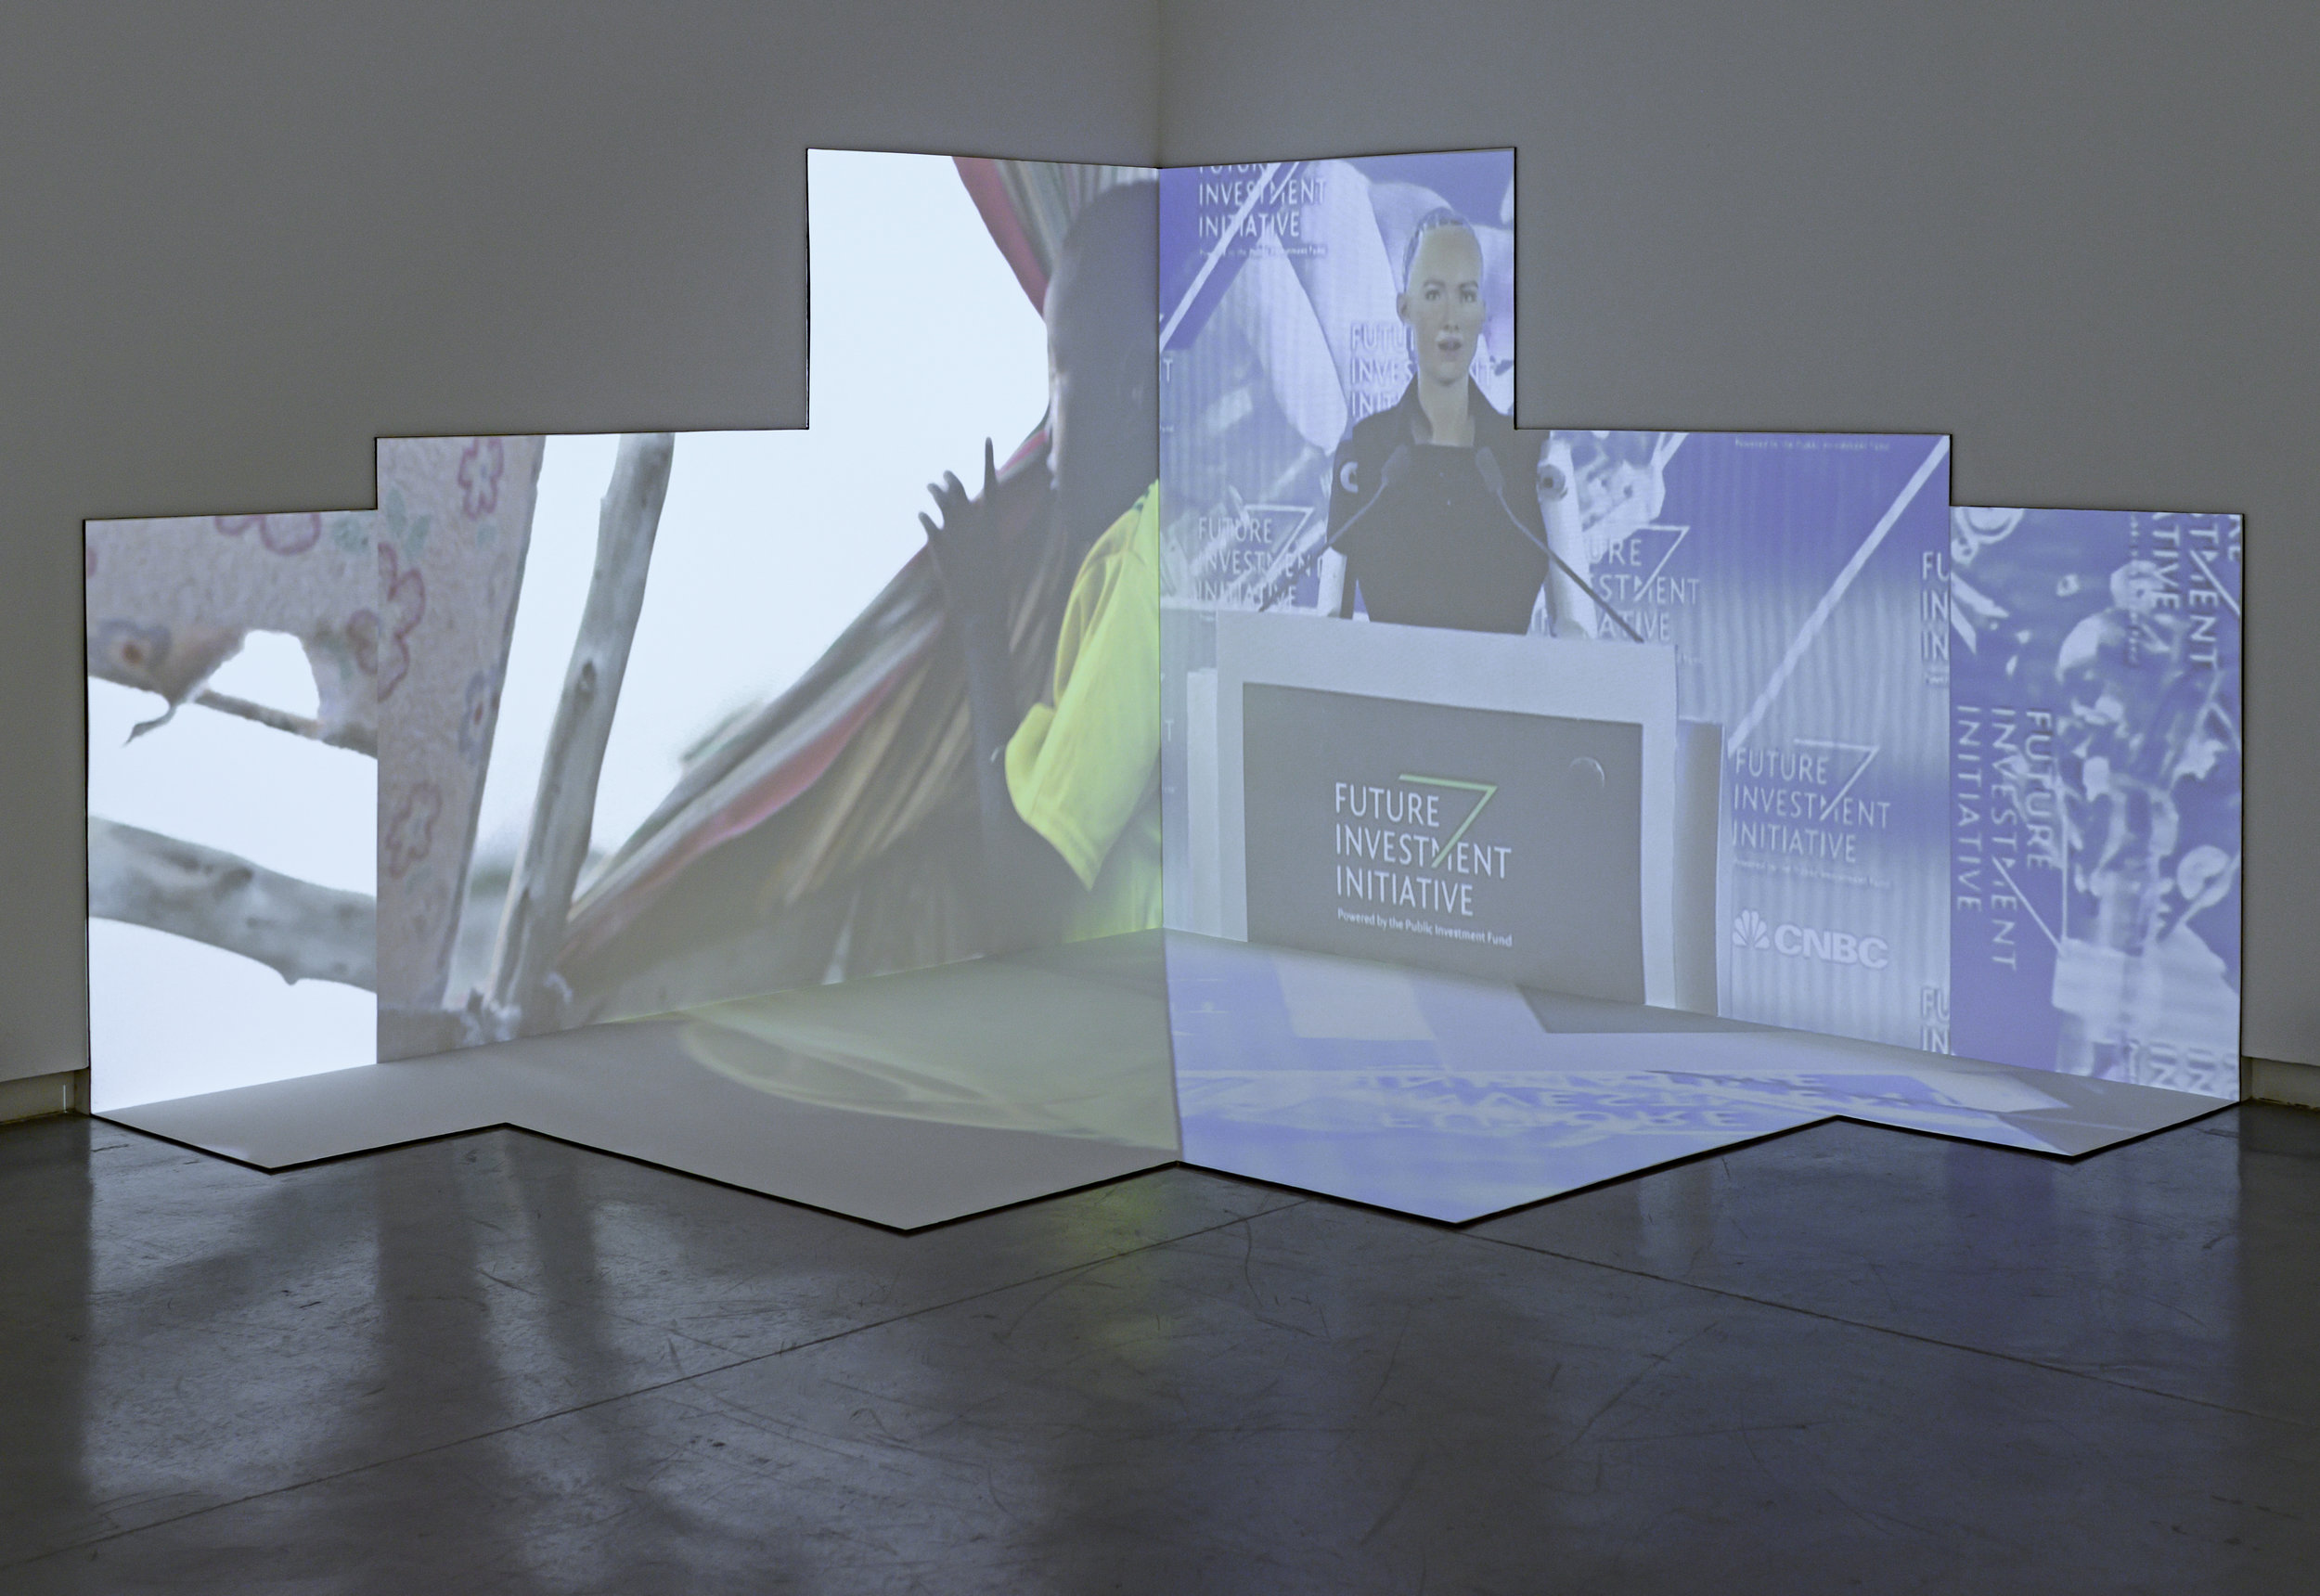 Mohammad Al Faraj,  Sophia,  2018–2019.Video installation, plywood, computer, stereo speaker;3 x 3 x 3 m, 10 minutes. Installation view:  Surface Tension,  Sharjah Art Foundation, Sharjah, 2019. Courtesy of the artist and Athr Gallery, Jeddah. Photo: Sharjah Art Foundation